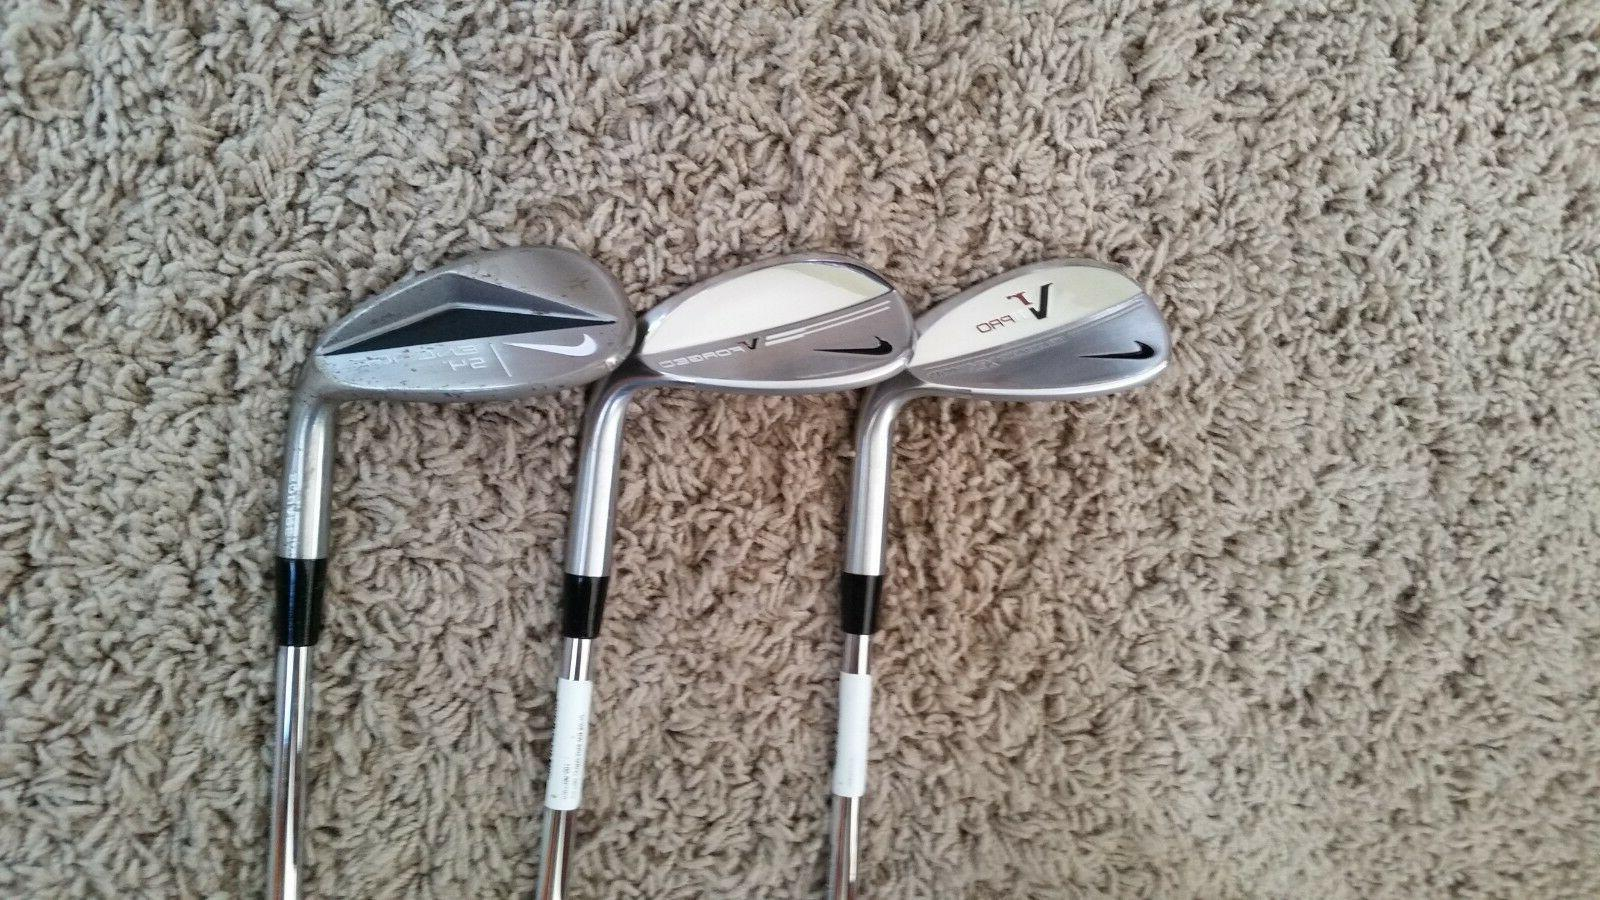 new golf wedges steel shaft select